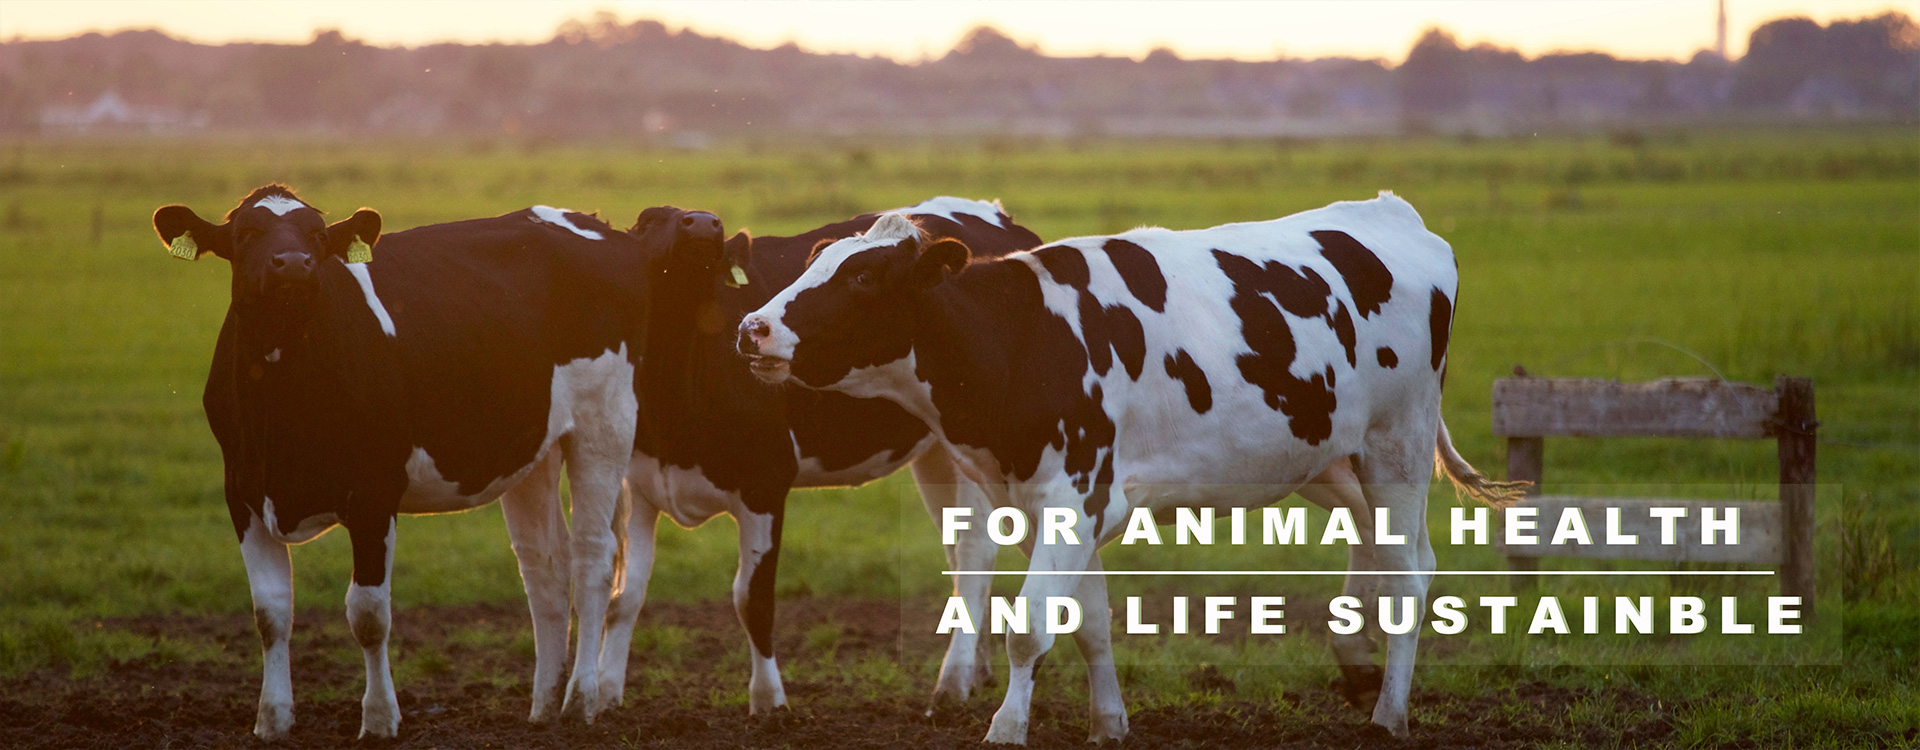 For Animal Health and Life Sustainble